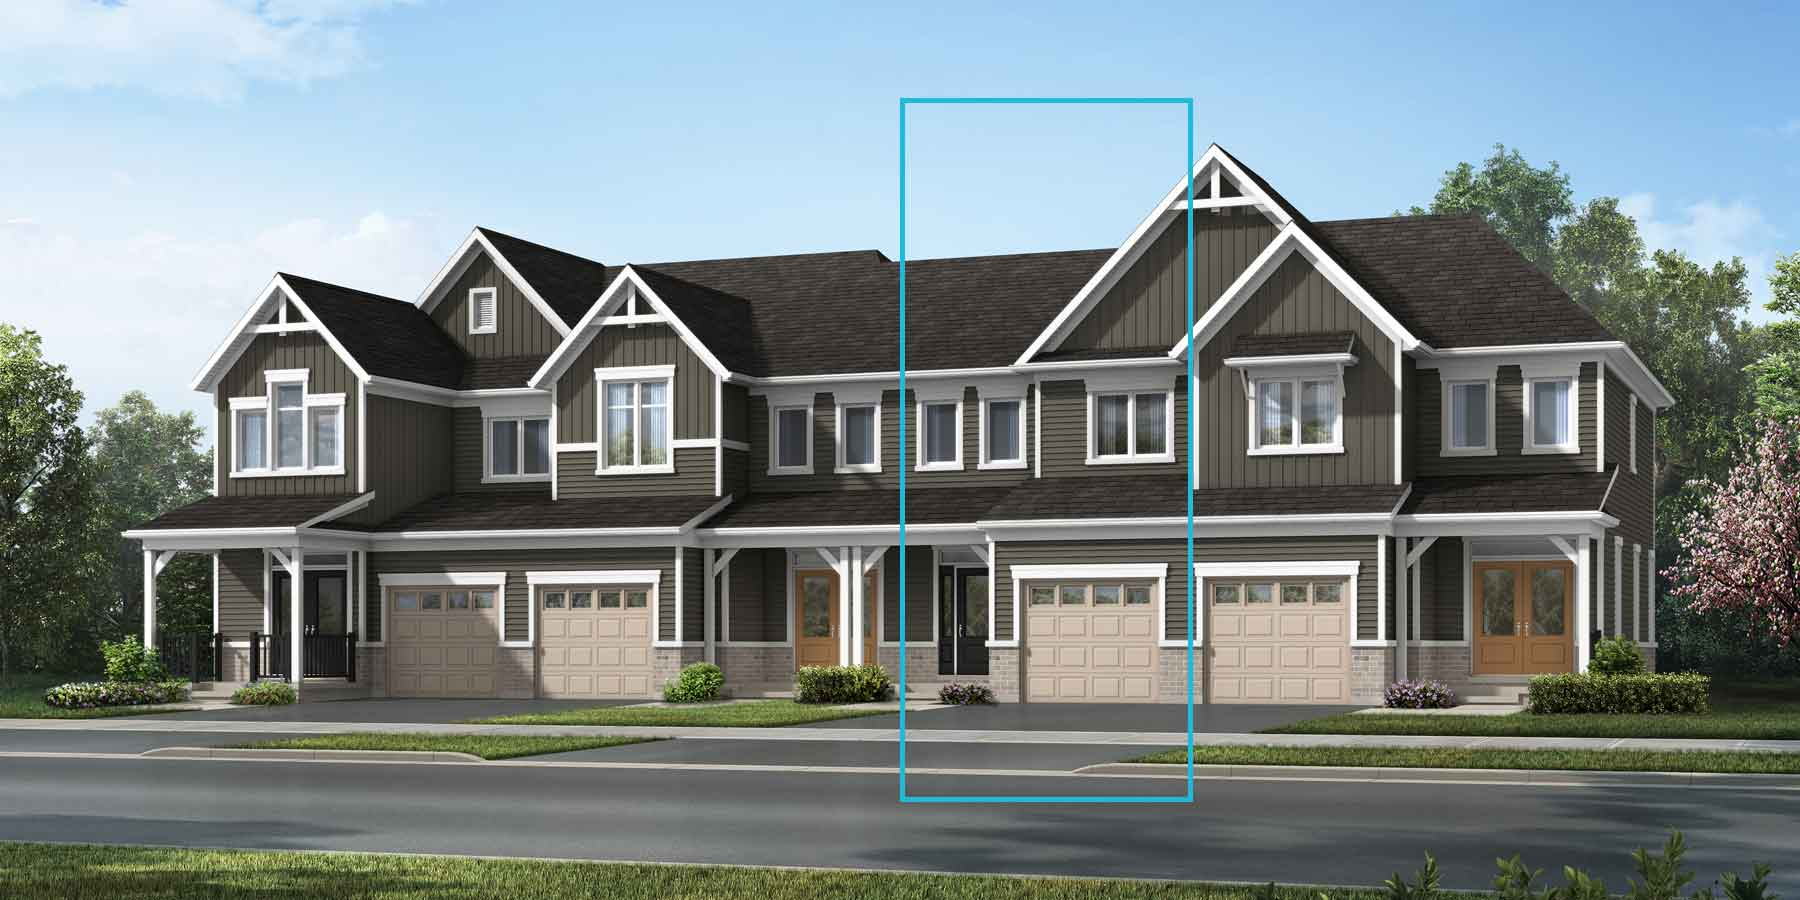 The Cranbrook Plan elevationfarmhouse_southestates_cranbrook_main at Wildflower Crossing in Kitchener Ontario by Mattamy Homes